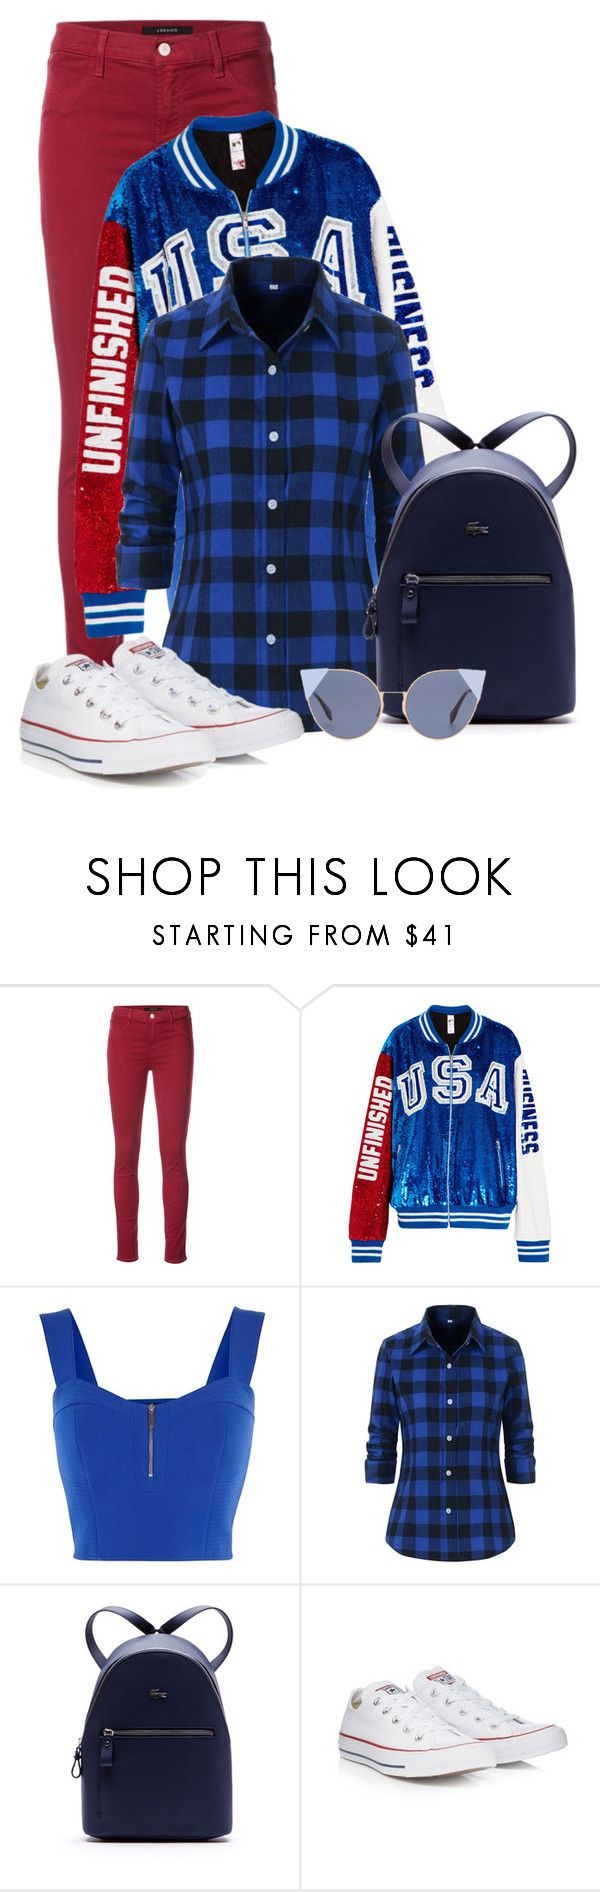 """""""USA (bomber jacket)"""" by vivienlacroix ❤ liked on Polyvore featuring J Brand, Ashish, Karen Millen, Lacoste, Converse and Fendi"""